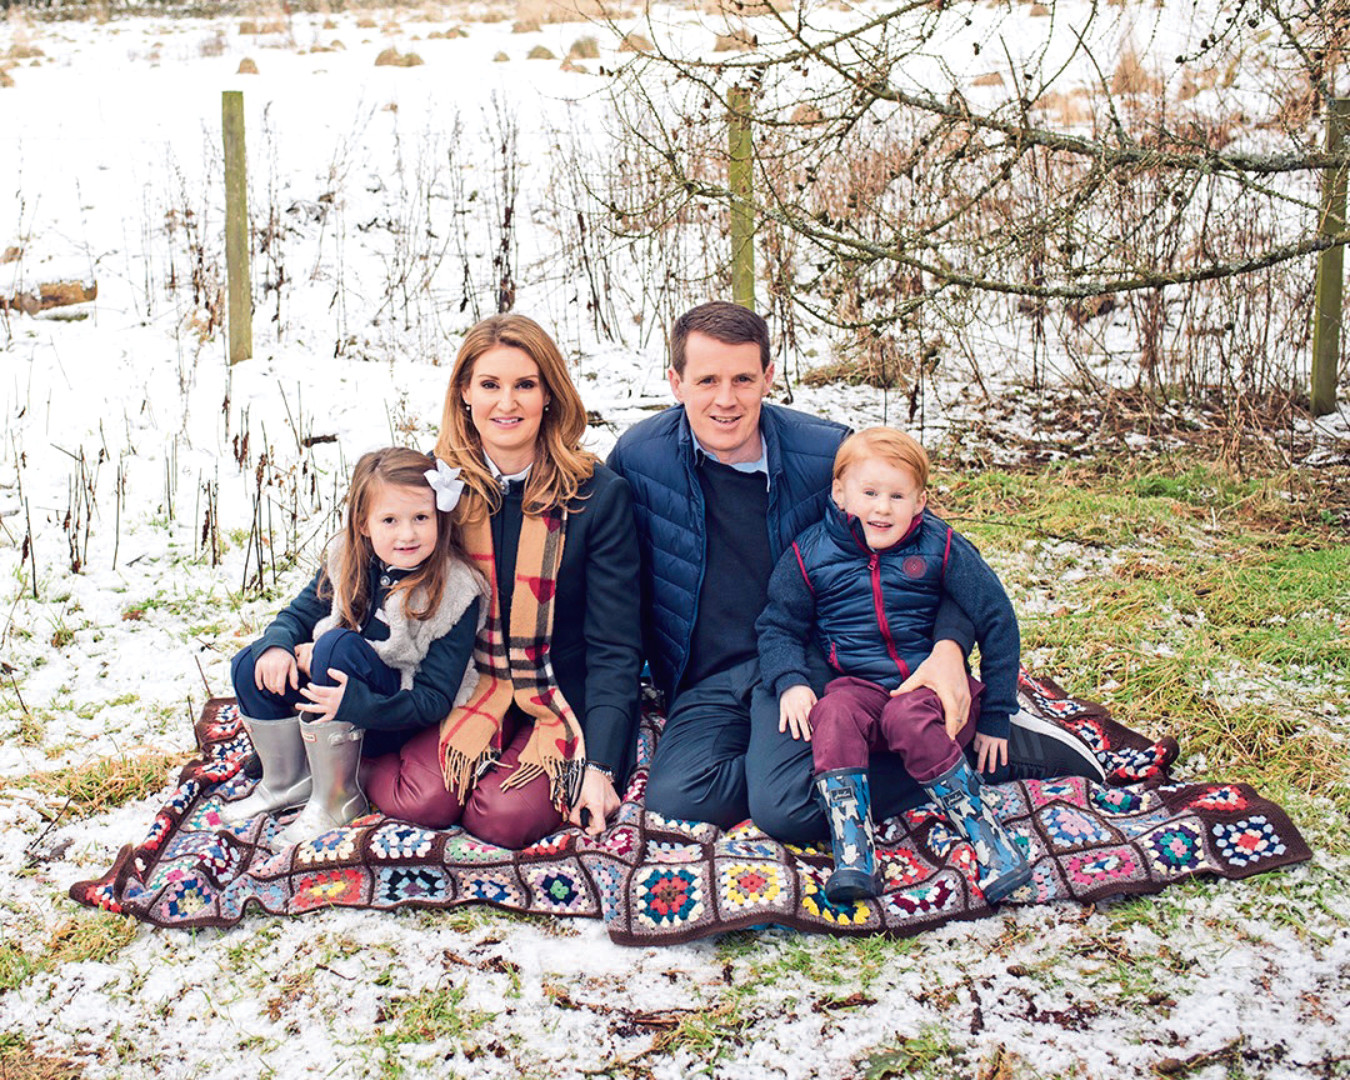 Faye and Nathan Whyte, pictured with children Georgiana and Jacobi, have put £15,000 towards research into Duchenne Muscular Dystrophy